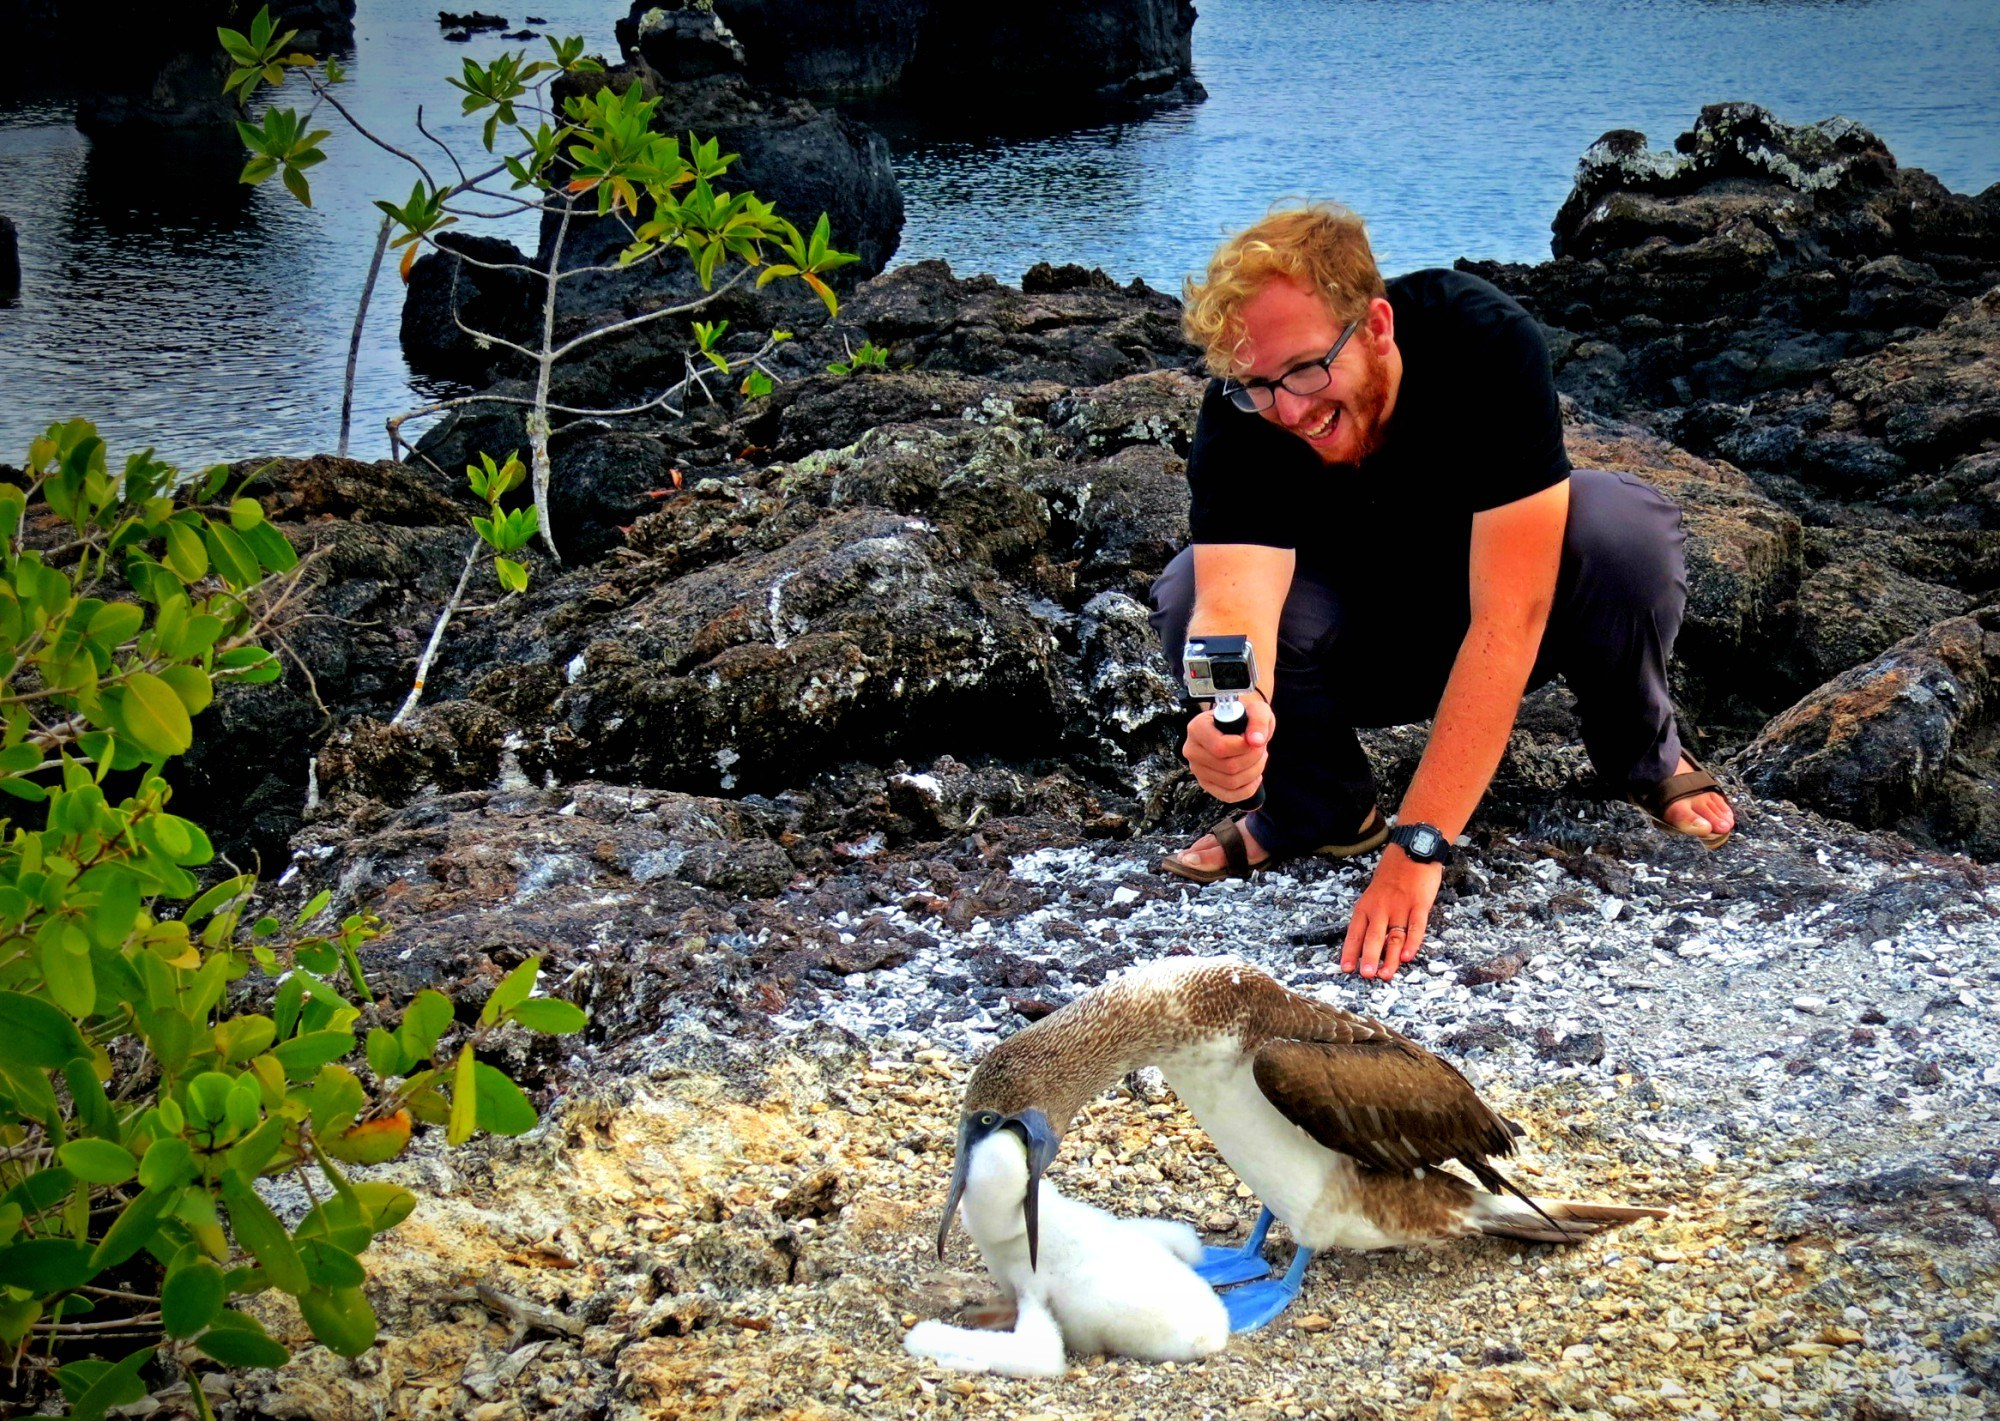 Watching blue footed boobies feed in the Galapagos Islands